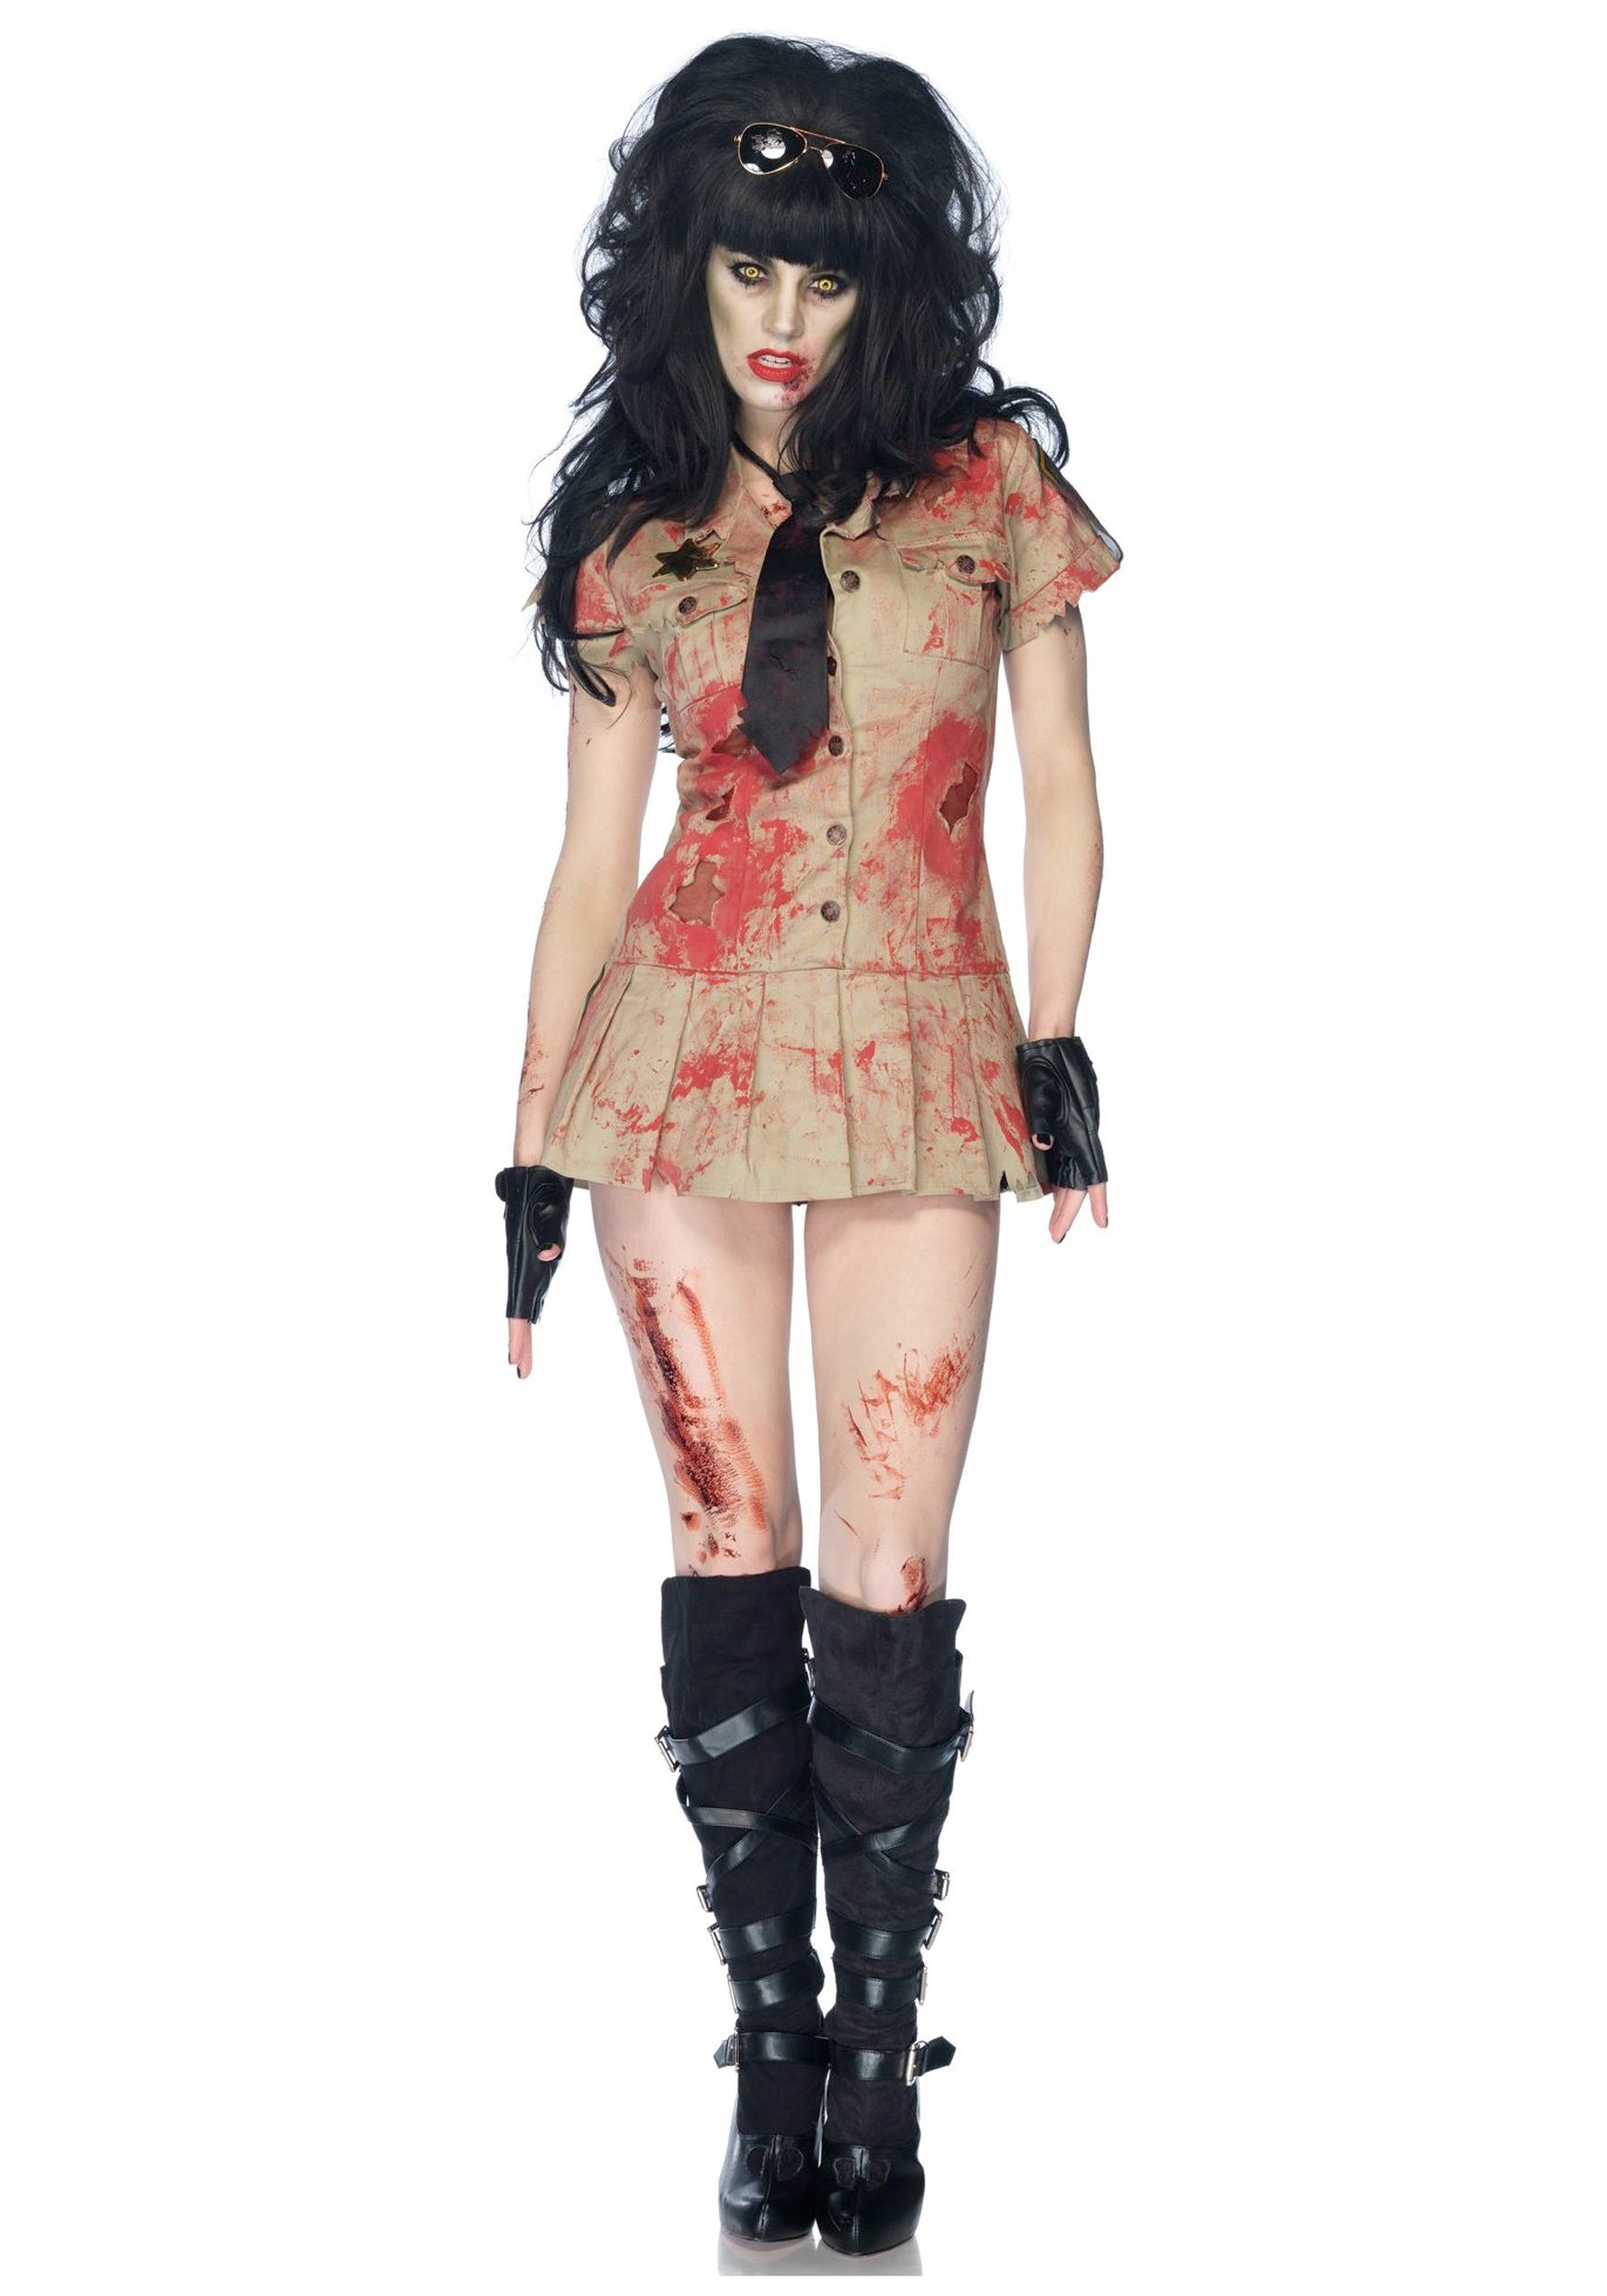 scary halloween costumes for women home scary costume ideas zombie costumes womens deputy zombie costumes - Scary Halloween Costumes Women